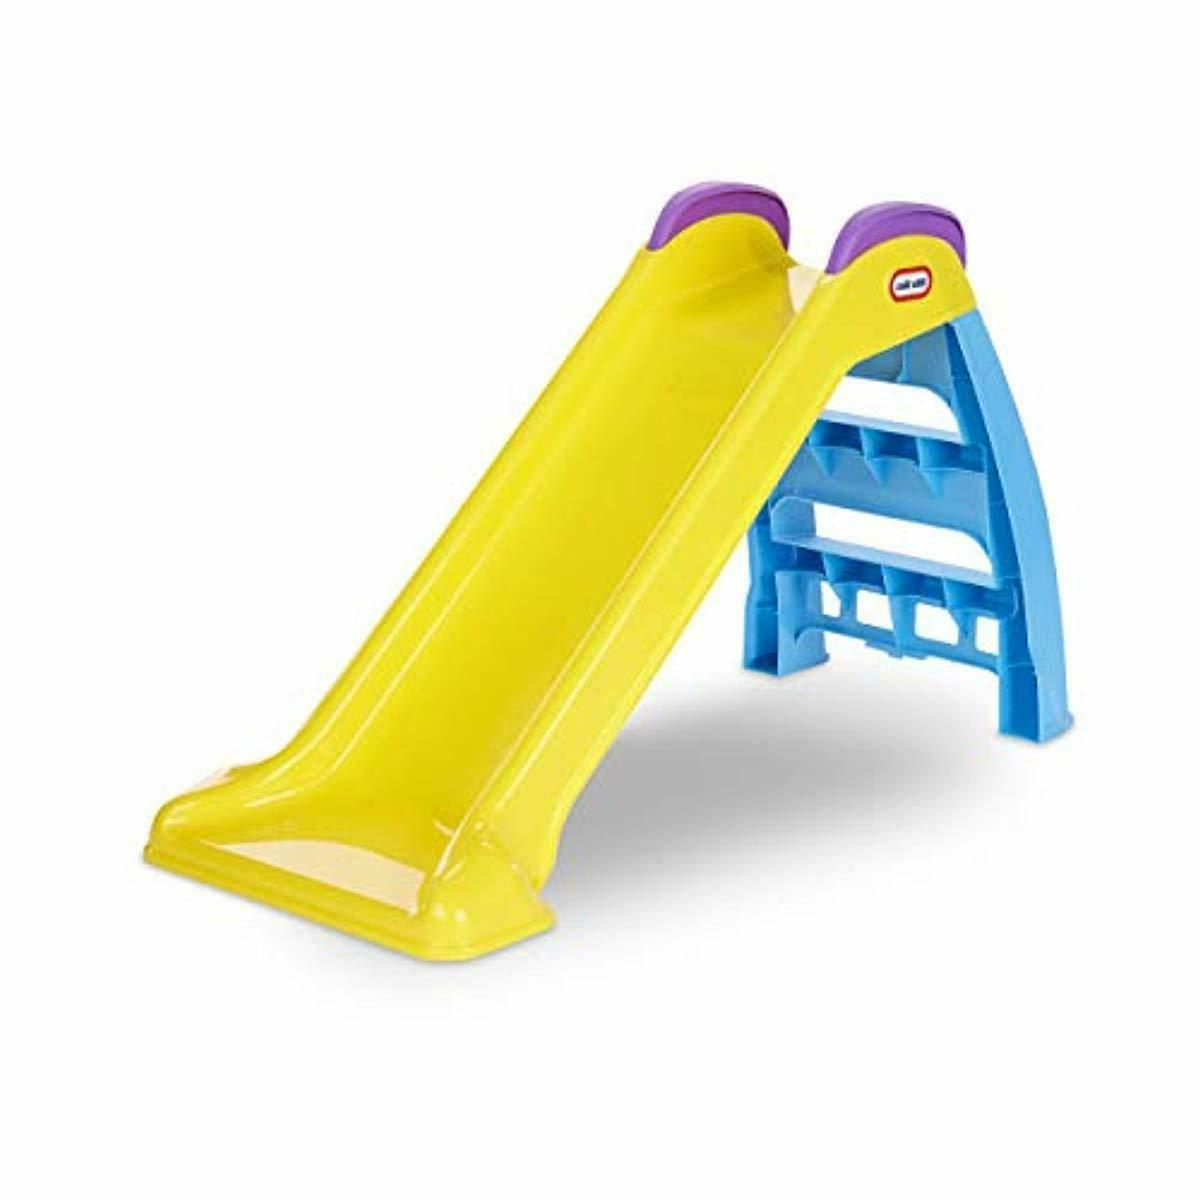 Little Tikes Dry First Slide Amazon Exclusive